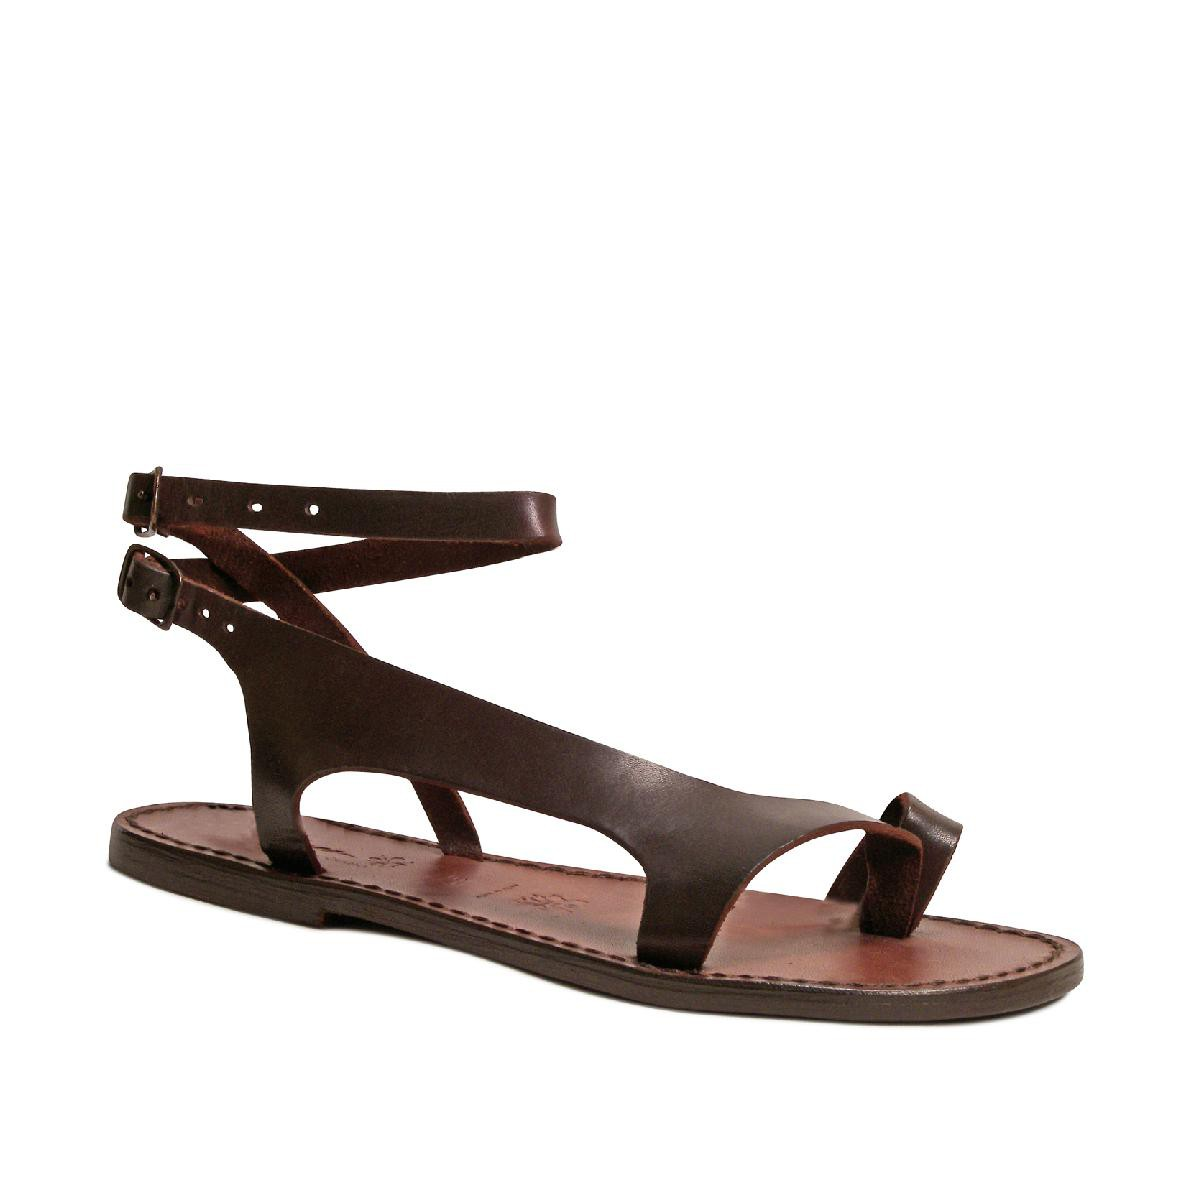 66a5ea40f5eb Brown leather thong sandals for women Handmade in Italy. Loading zoom